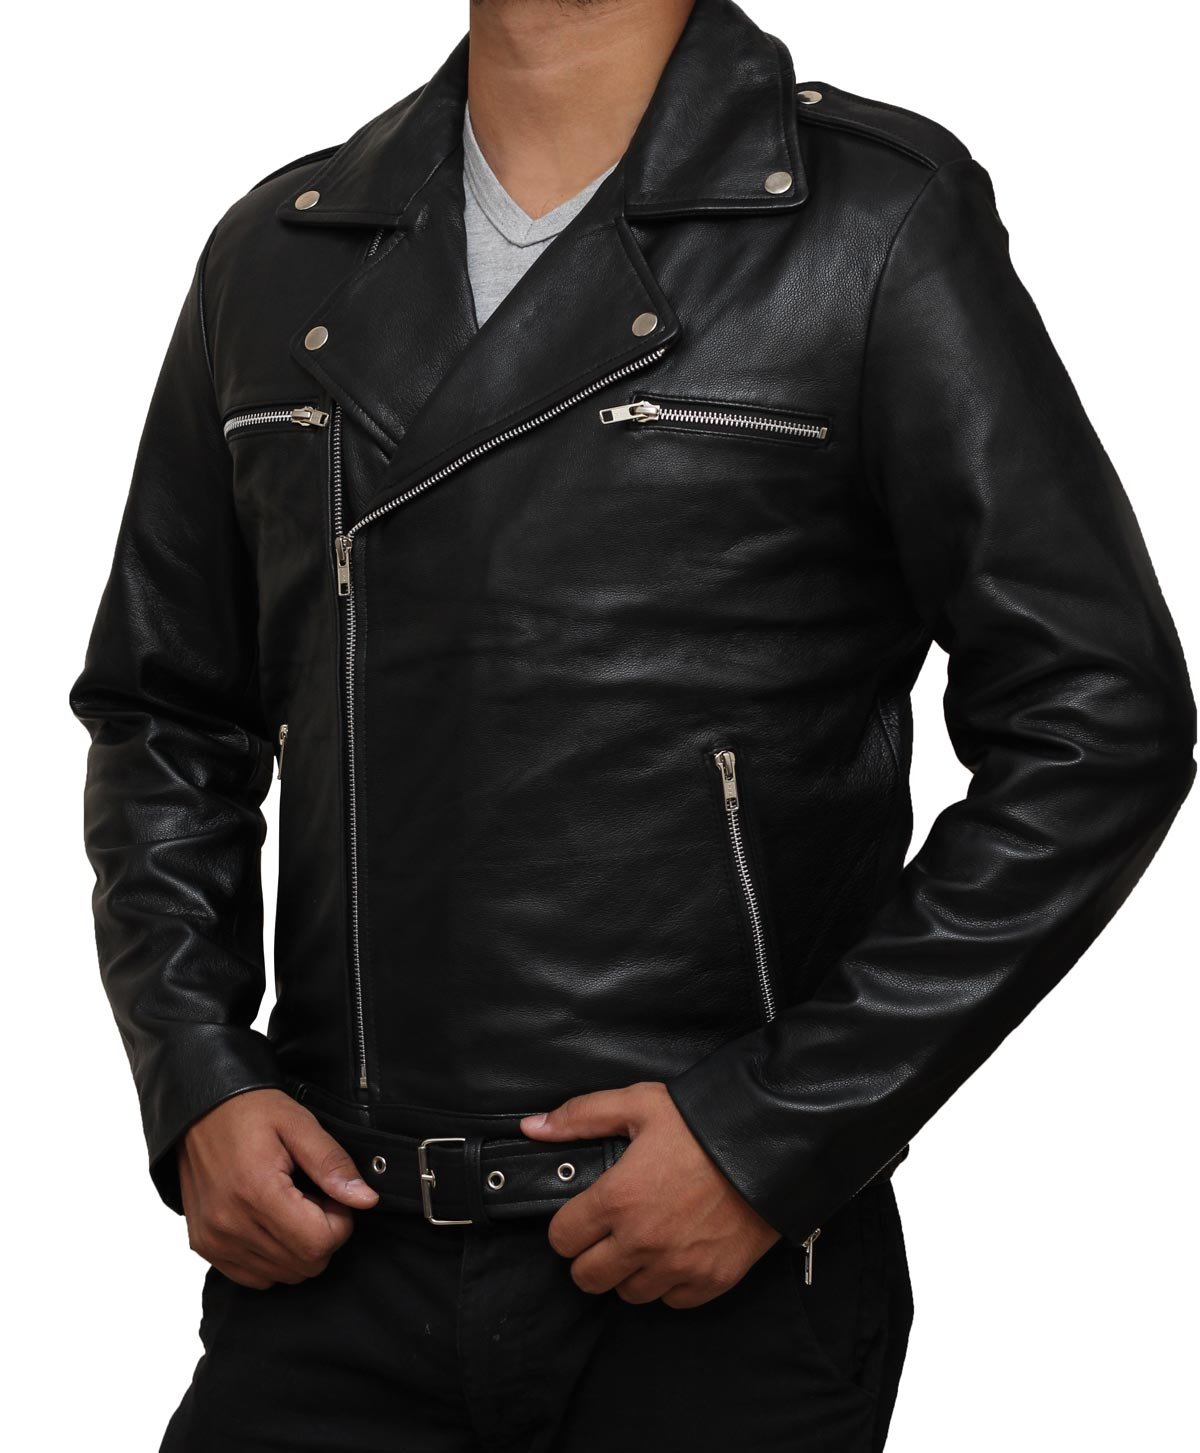 The Walking Dead Season 7 Black Negan Leather Jacket - Christmas Gift XL